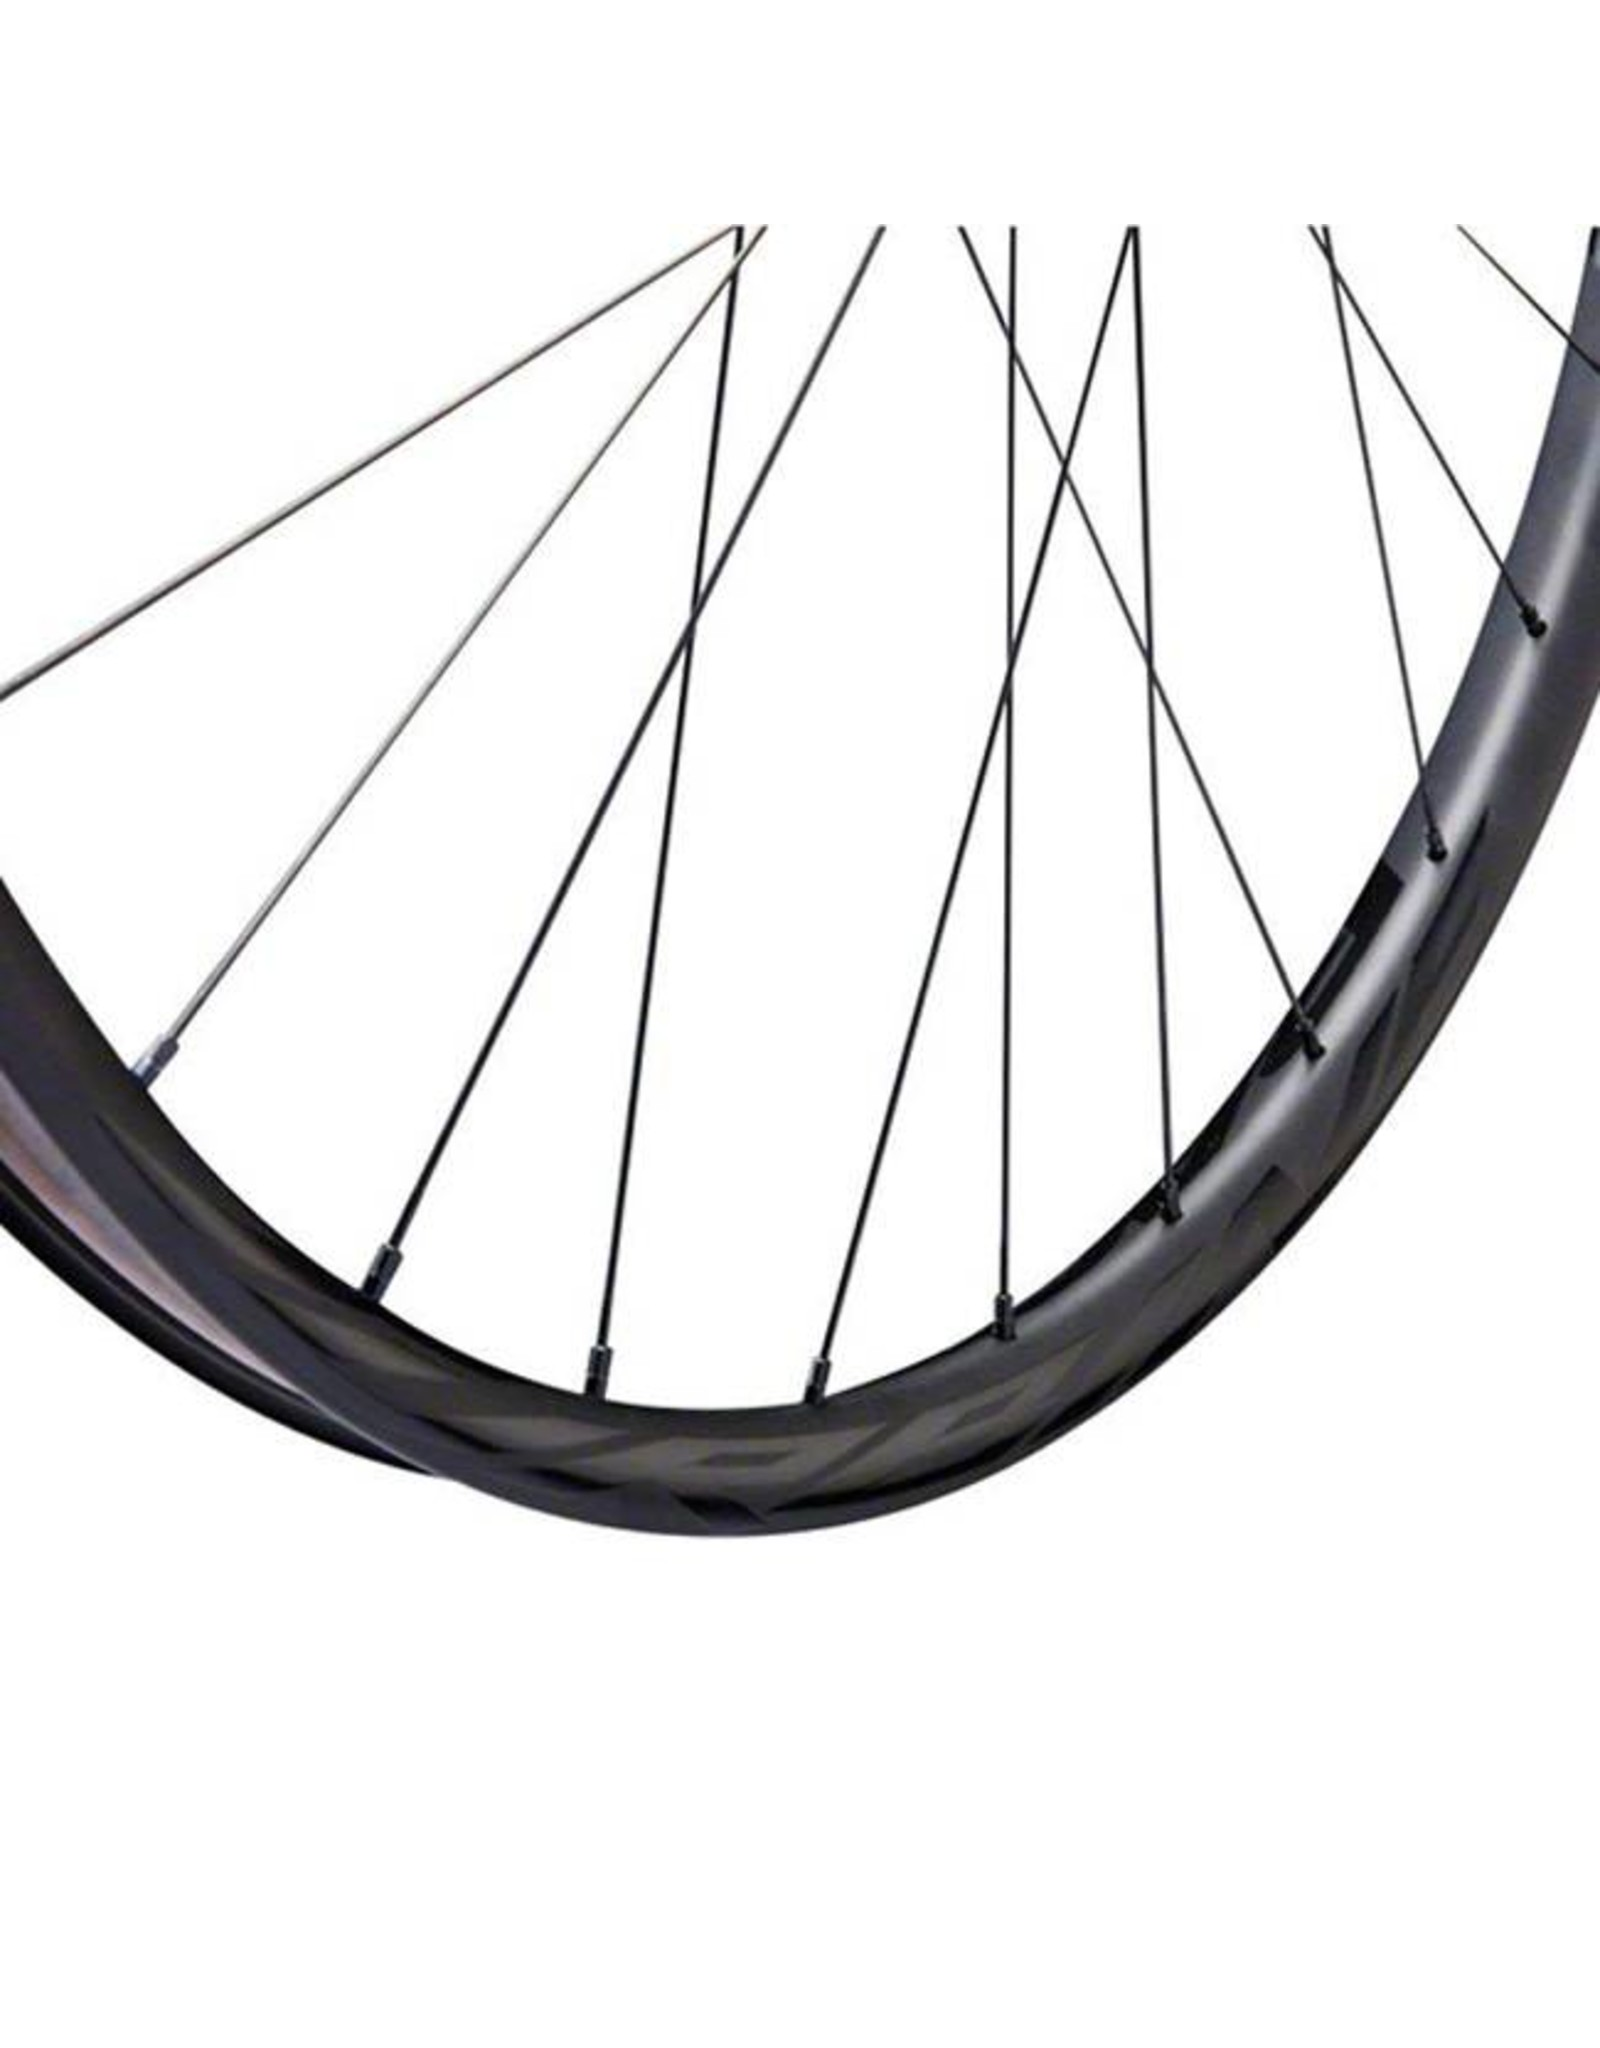 "RaceFace RaceFace Turbine R Rear Wheel: 29"", Alloy Rim, 12 x 148mm Thru Axle, SRAM XD Freehub"